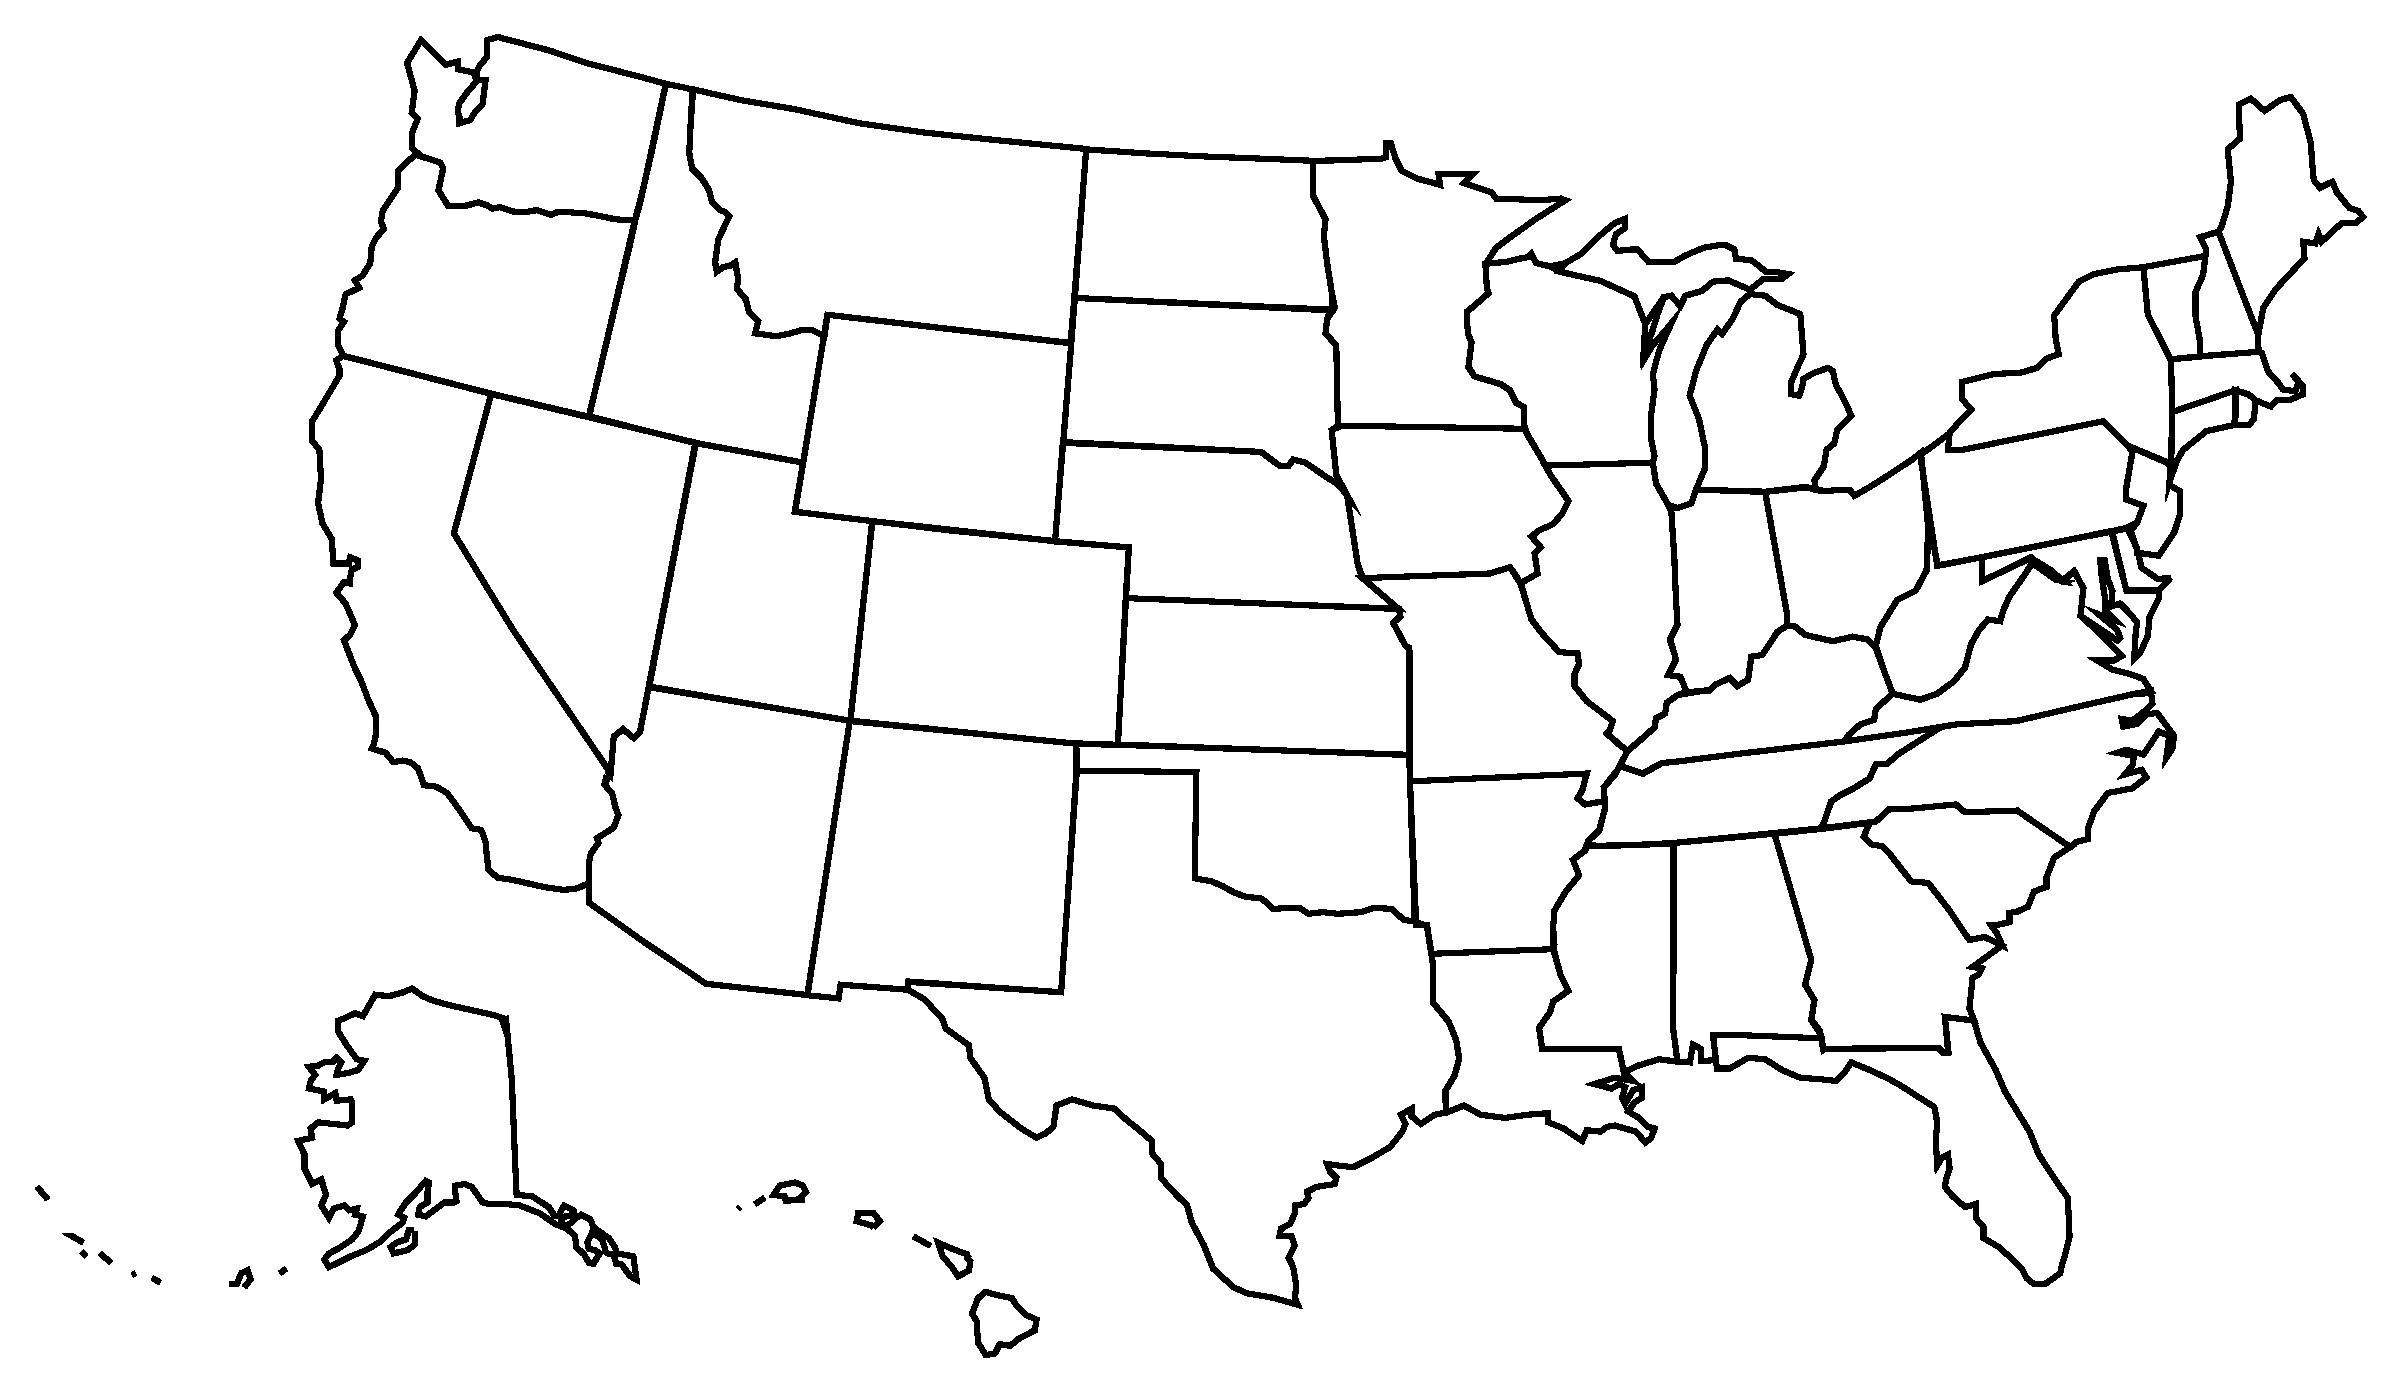 Clipart united states map 1 » Clipart Portal.